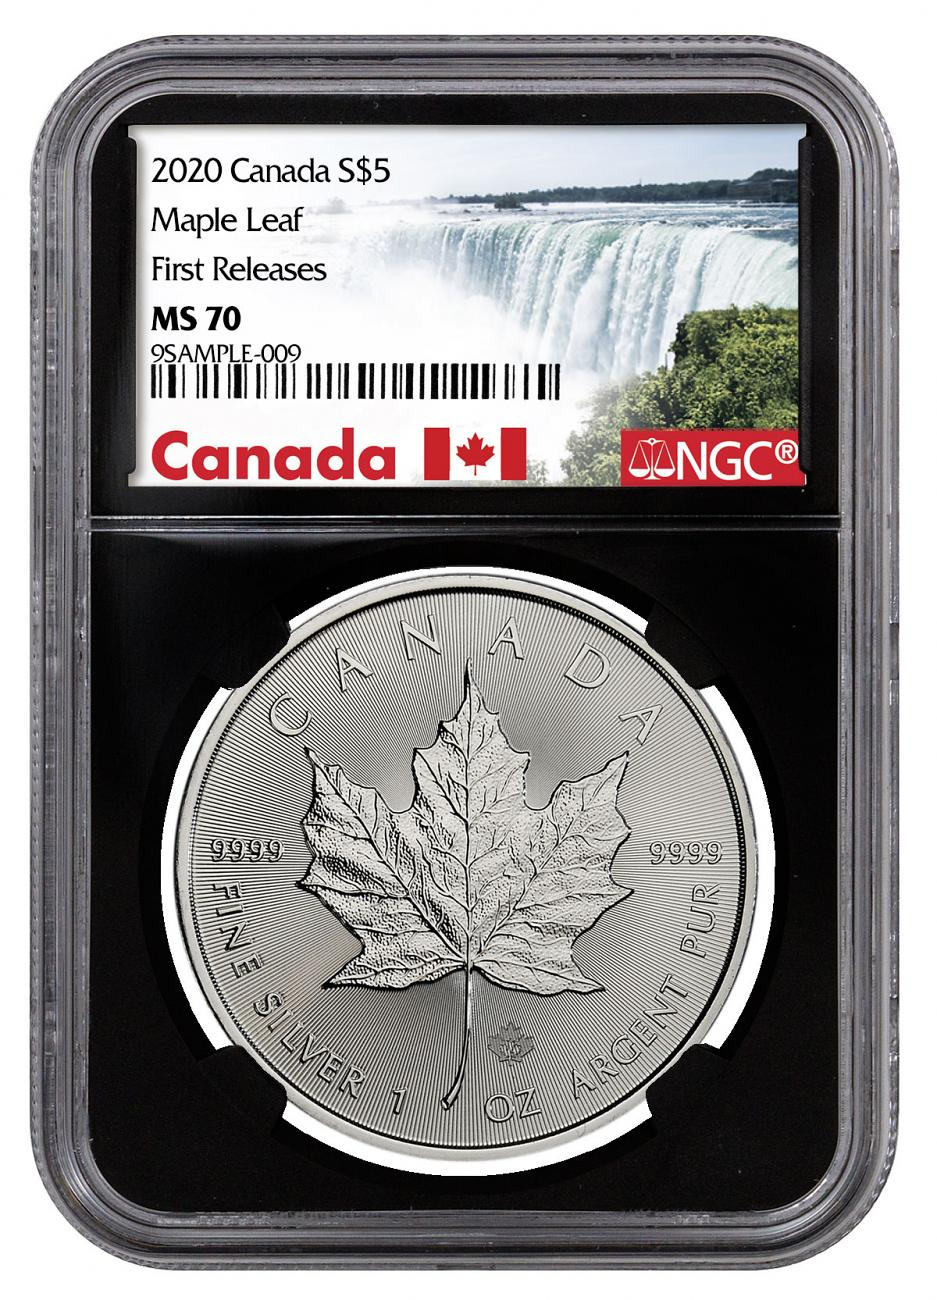 2020 Canada 1 oz Silver Maple Leaf $5 Coin NGC MS70 FR Black Core Holder Exclusive Canada Label